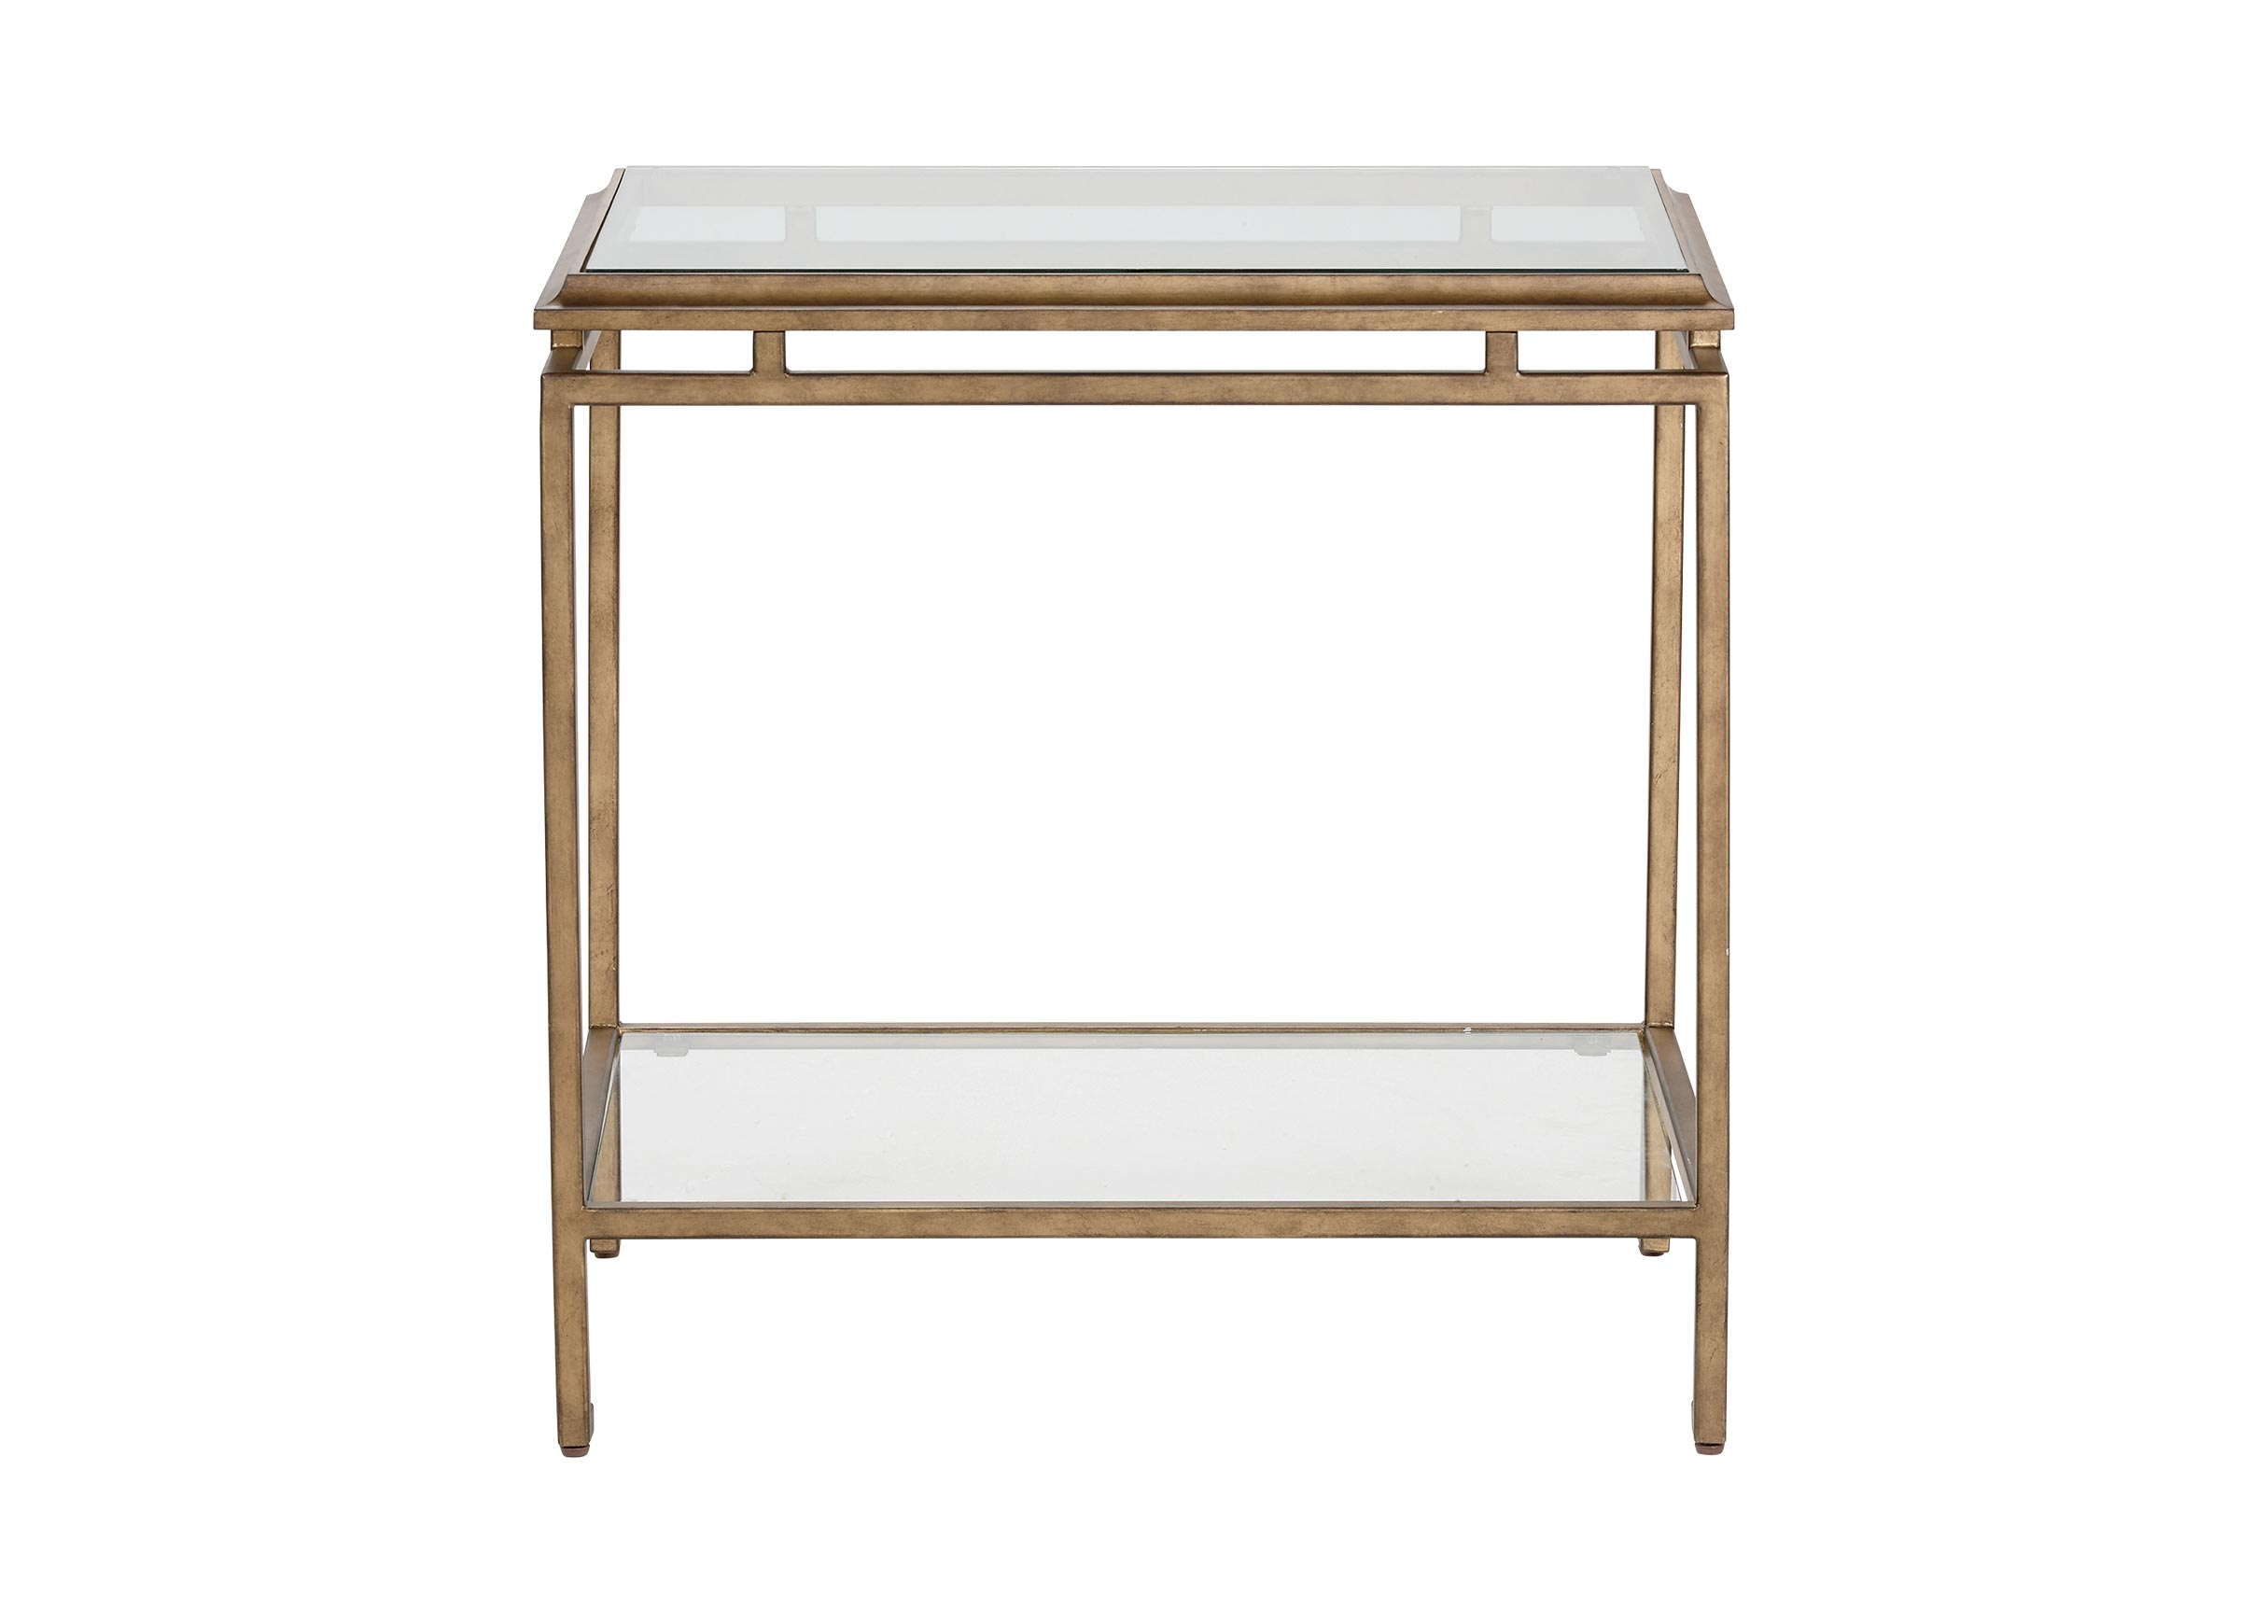 end tables side nesting ethan allen quick ship broyhill outdoor sectional tall glass dining room table white and mirrored bedside small square light brown sofa decorating ideas